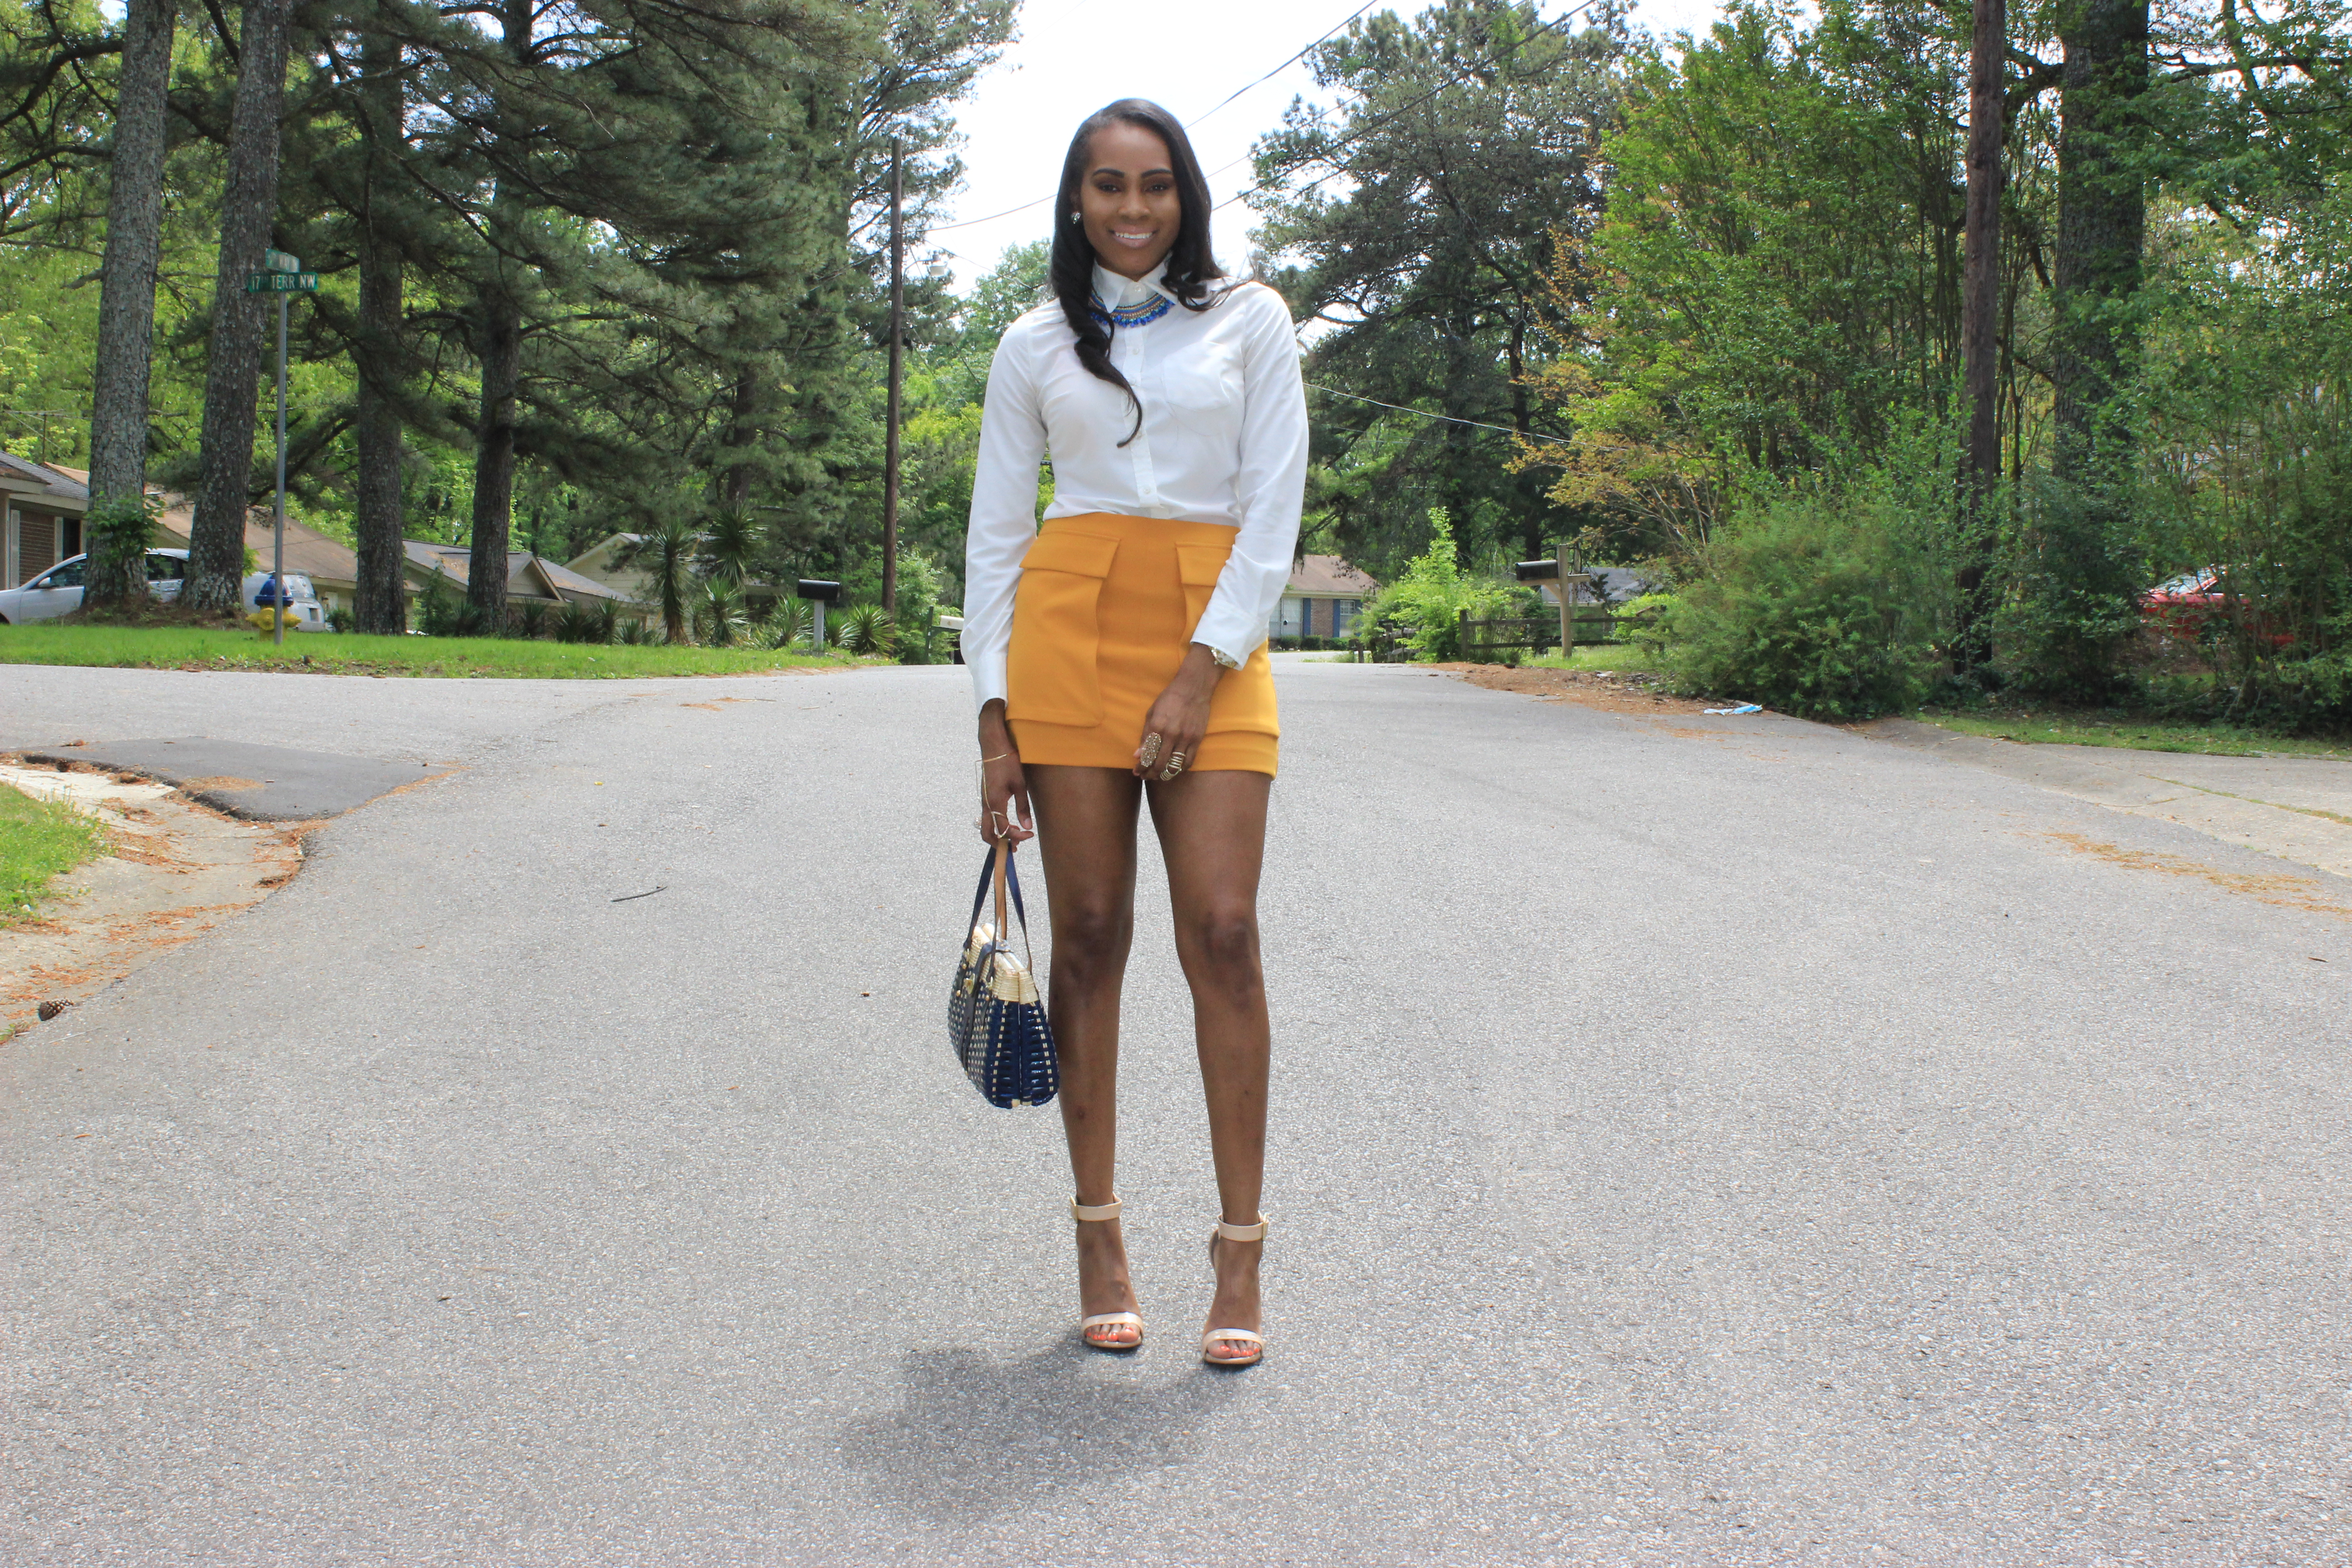 Style-Files-Forever21-Mustard-Yellow-Flap Pockets-Mini-Skirt-Yellow-Mini-Skirt-Target-Merona-White-Blouse-Mossimo-Ankle-Strap-Tan-Nude-Patent-Leather-sandals-oohlalablog-6